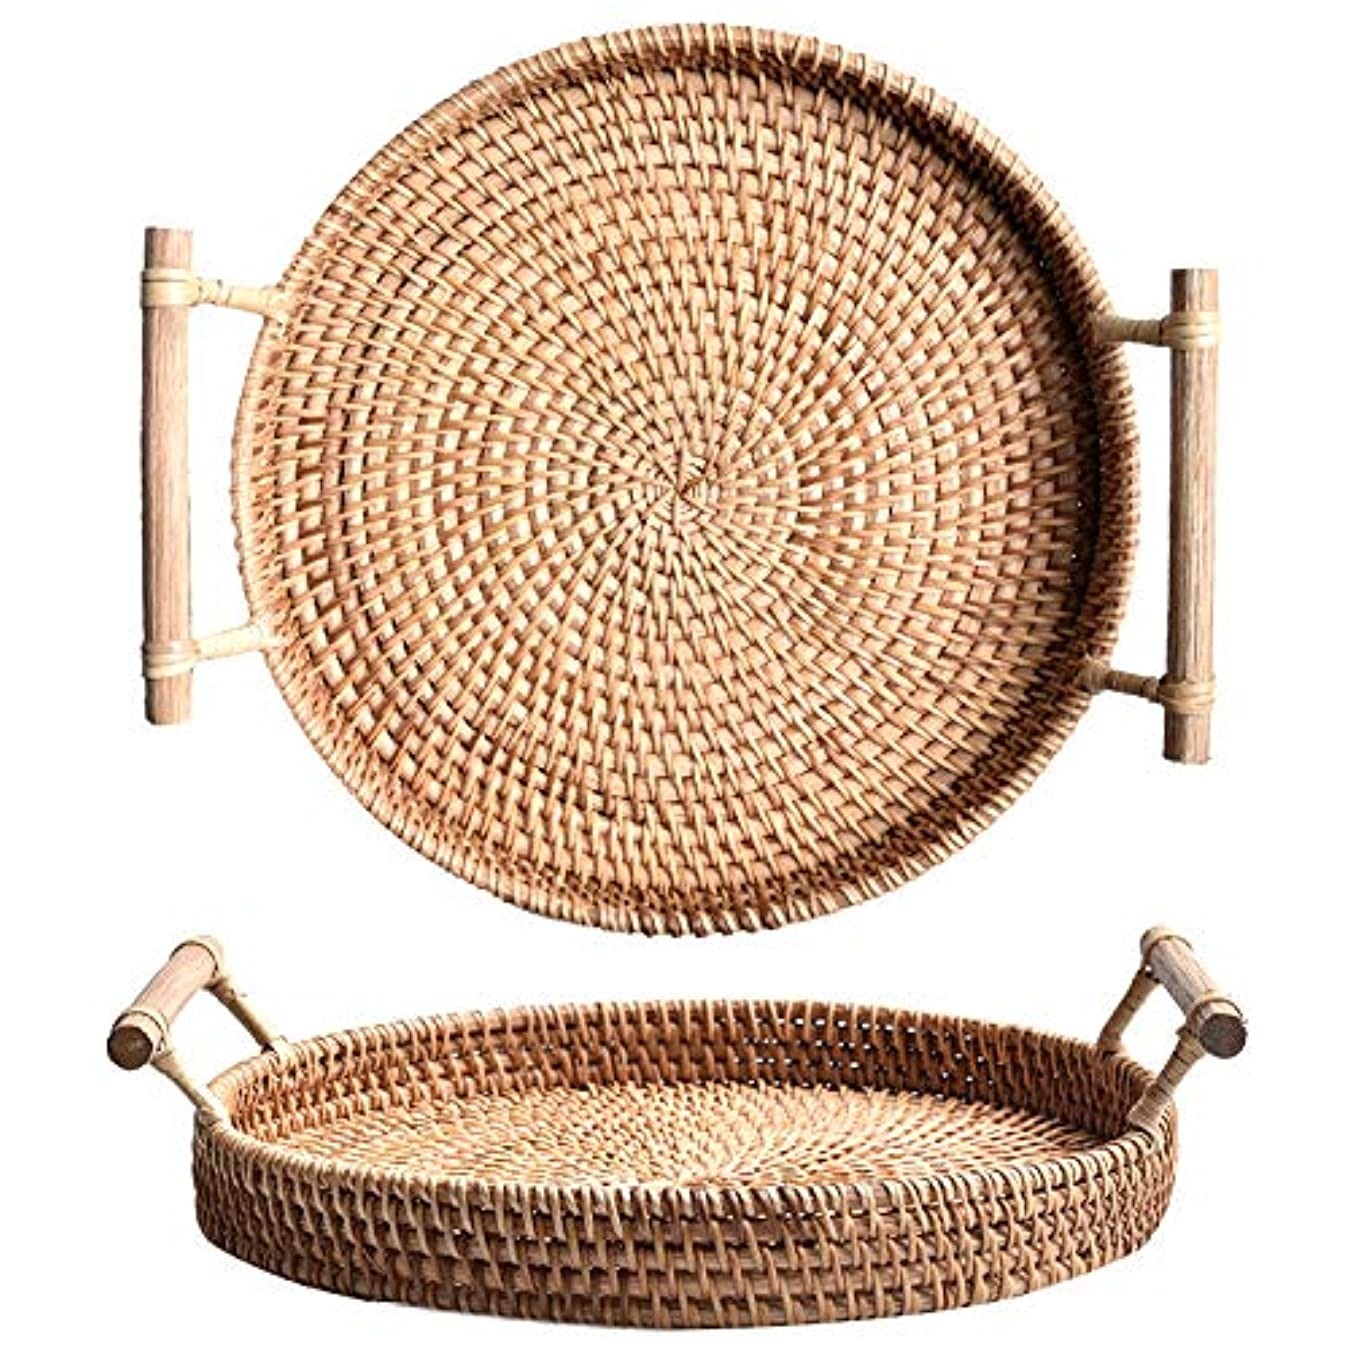 iHogar Hand-woven Round Rattan Serving Tray with Handles Bread Cake Pastries Basket (11 inches)